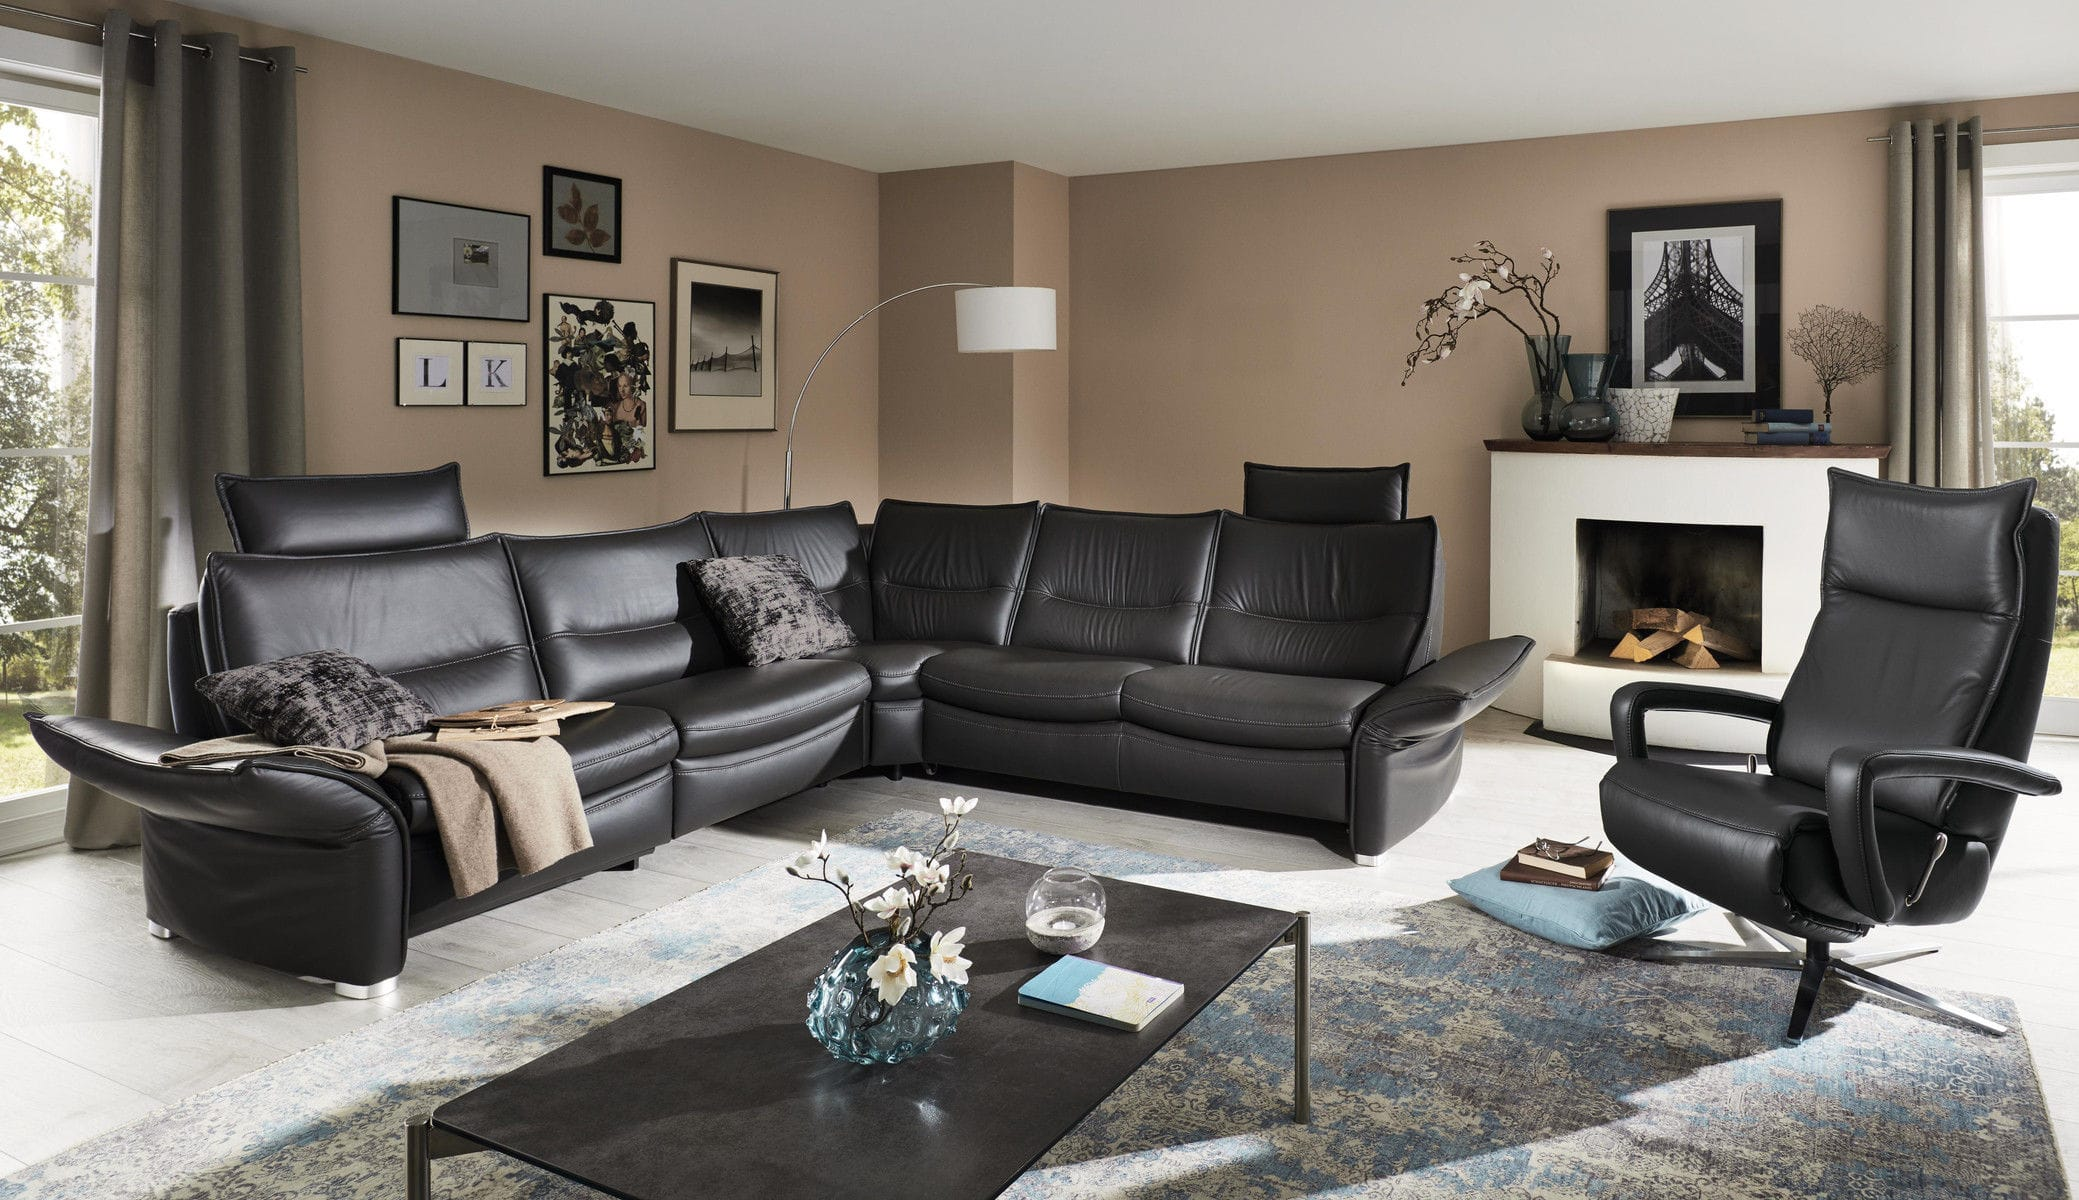 Convertible Sofa Mr 250 Musterring Contemporary Leather Brown